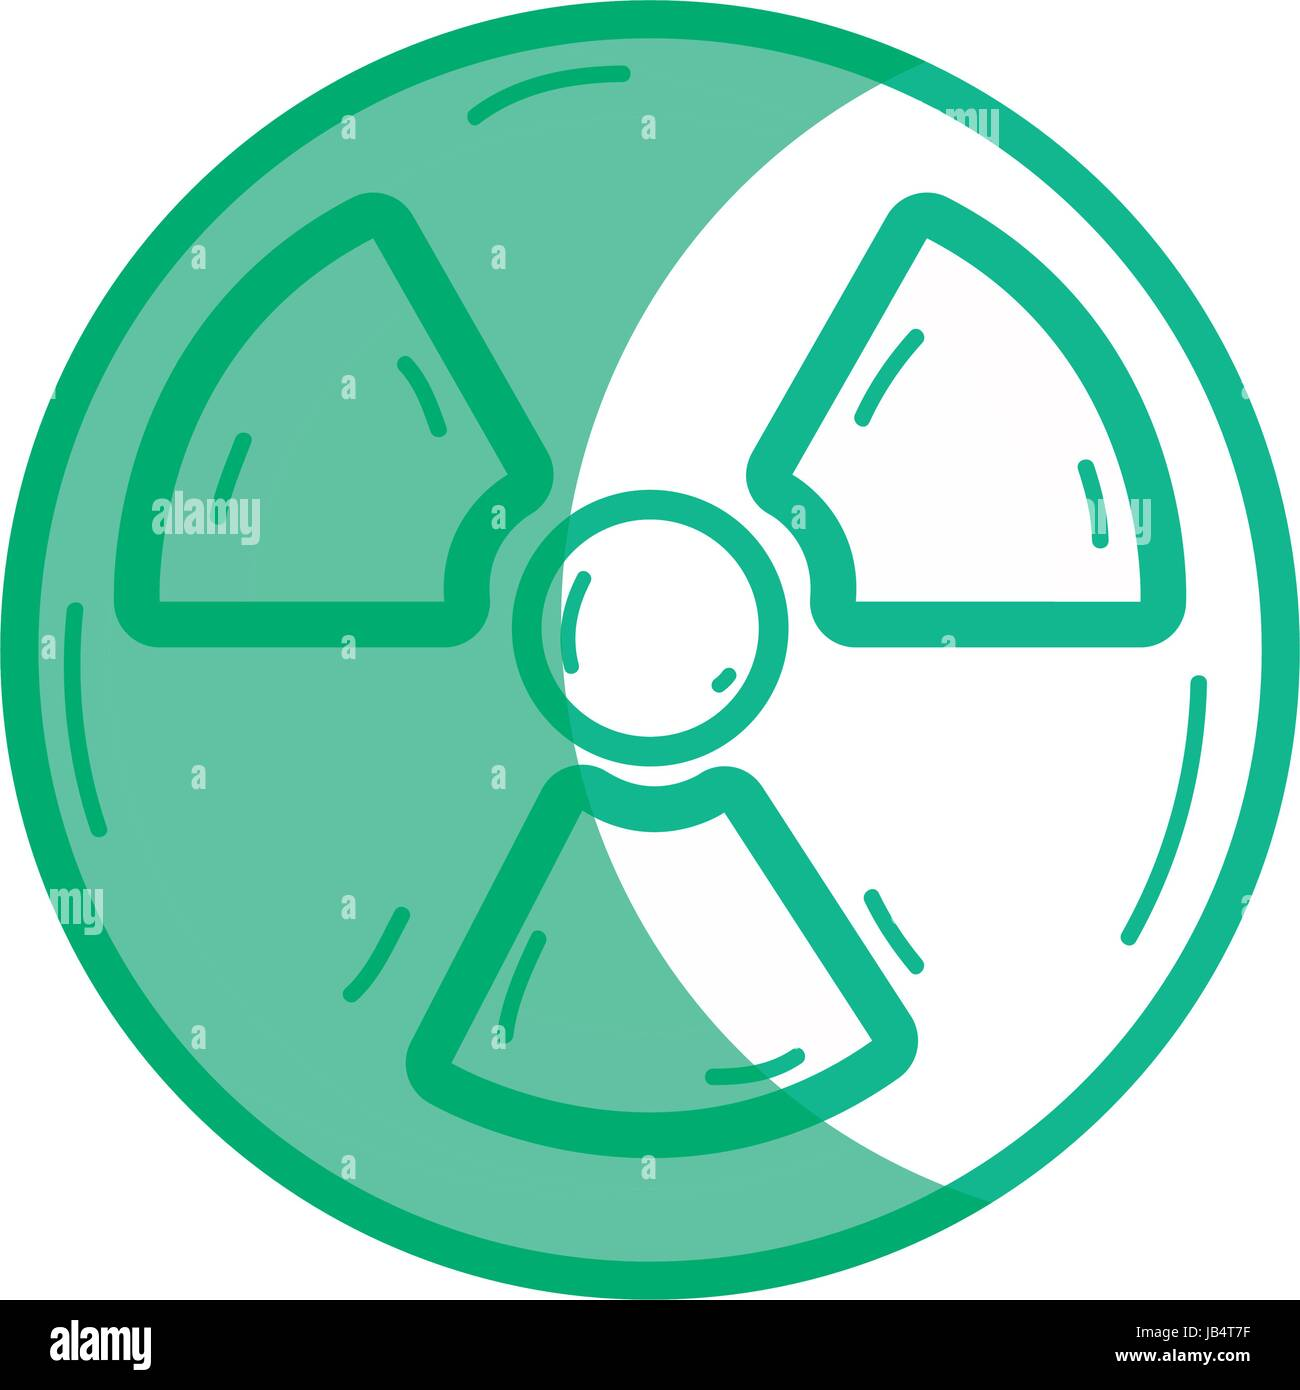 silhouette radiation symbol to dangerous and ecology contamination - Stock Image